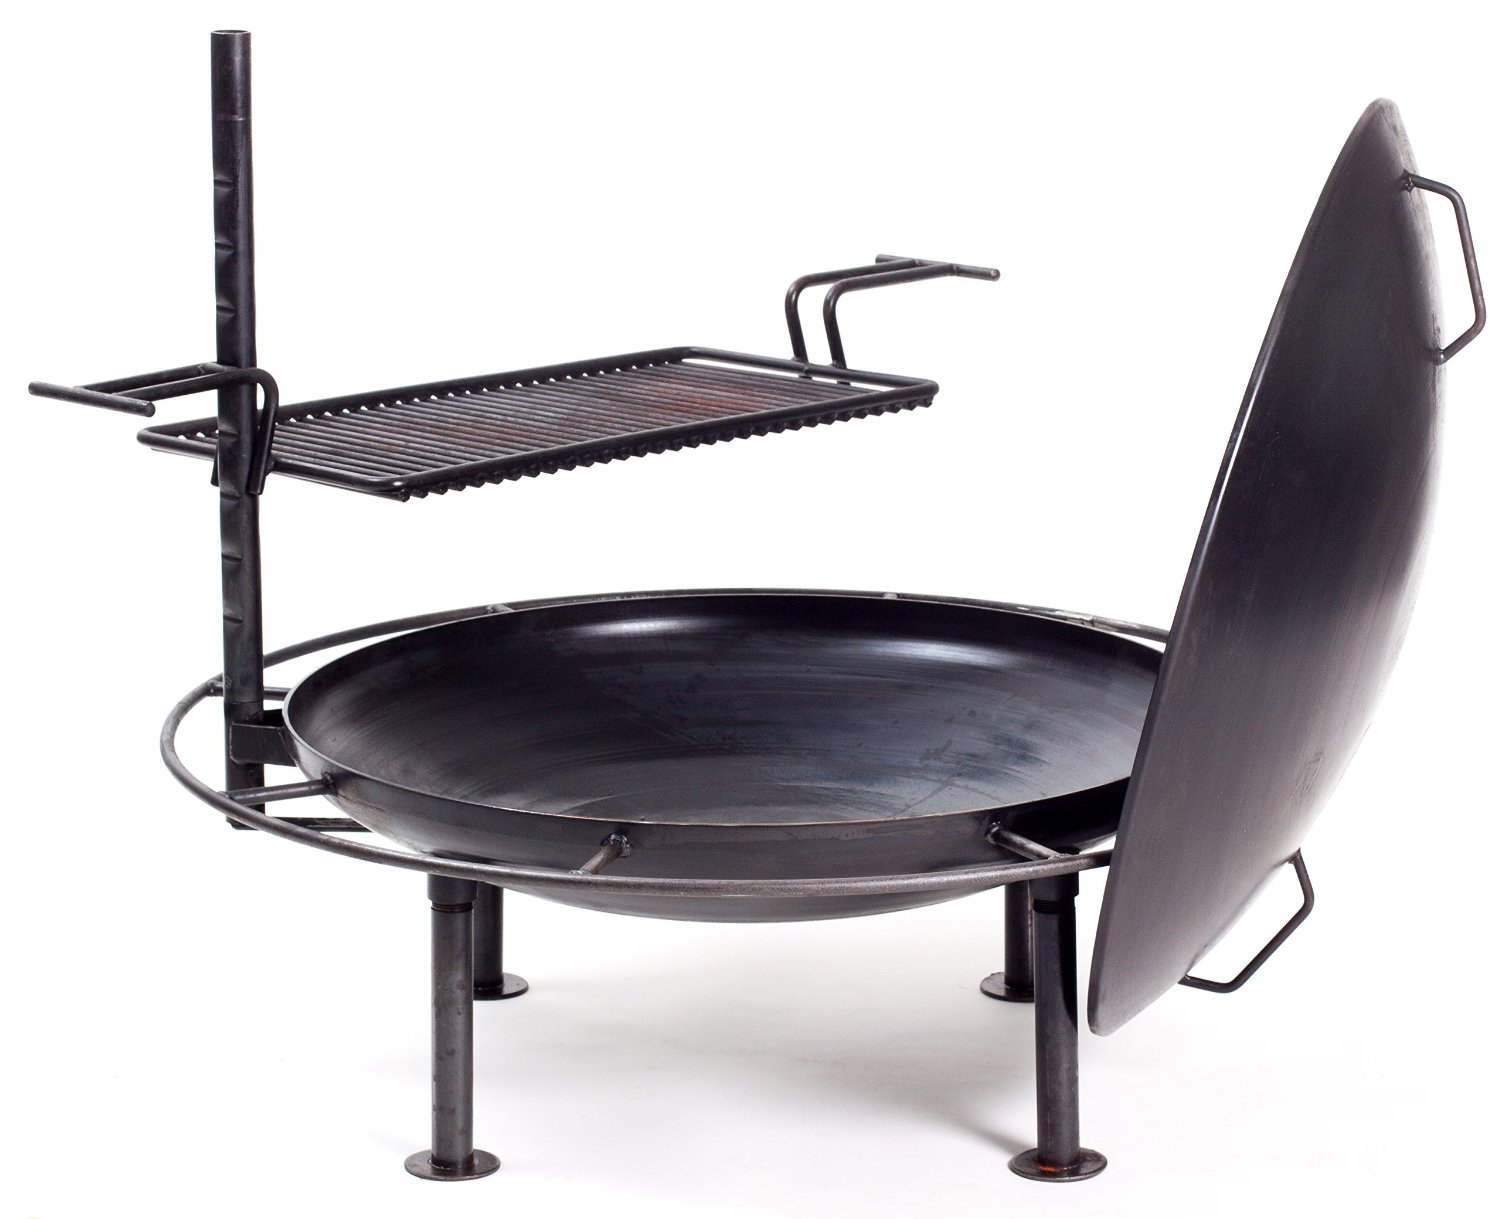 """Firepan 30"""" Heavy Steel Portable, Outdoor Fire Pit, Fireplace, Grill and Camp Stove. Includes Metal Rain Cover / Wind shield and removable Grill"""